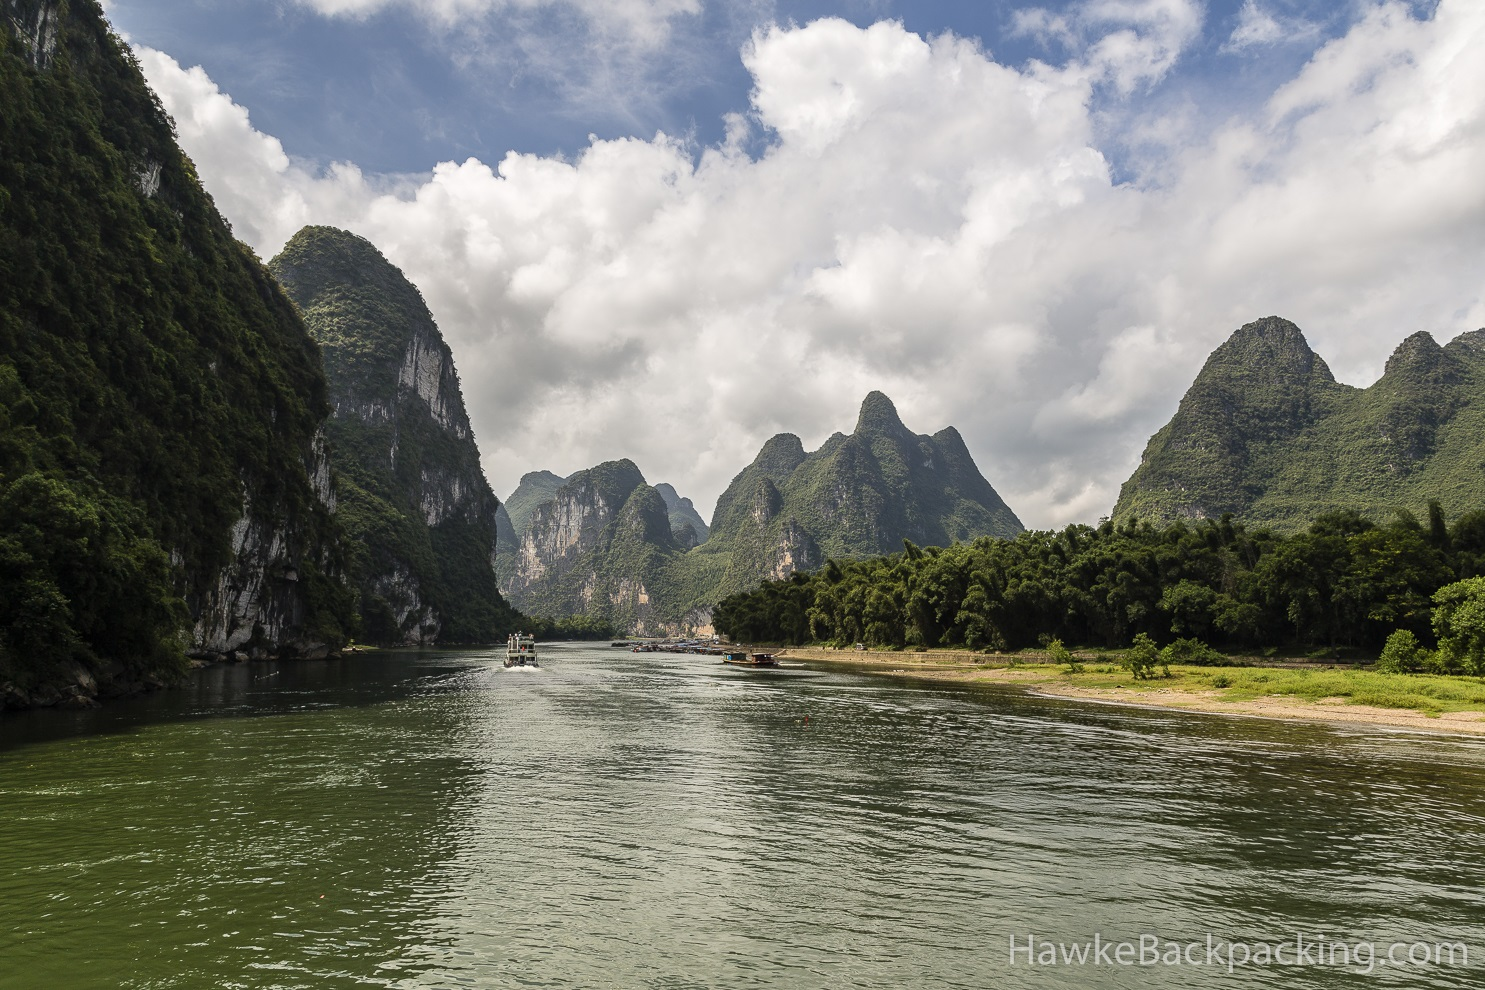 Li River Hawkebackpacking Com